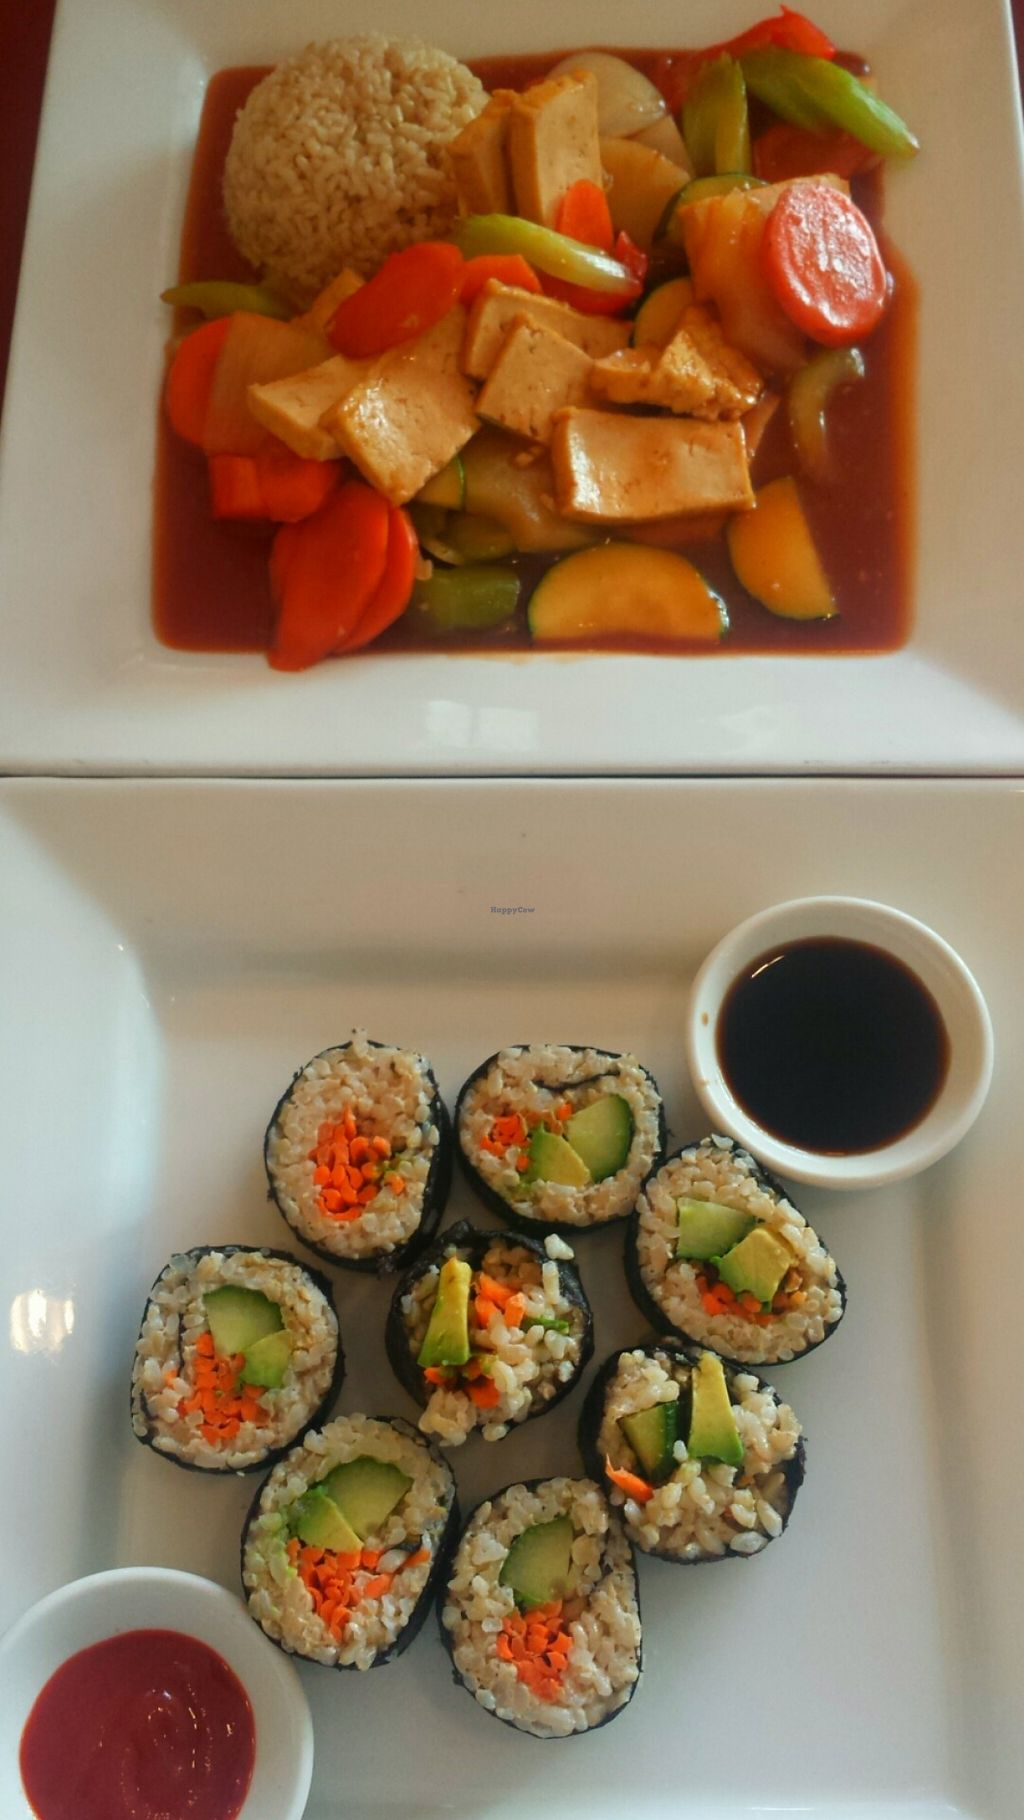 """Photo of Green Earth Vegetarian Cuisine  by <a href=""""/members/profile/Vegan%20BB"""">Vegan BB</a> <br/>Sushi and gluten-free Sweet & Sour Sensation <br/> February 20, 2016  - <a href='/contact/abuse/image/15063/137082'>Report</a>"""